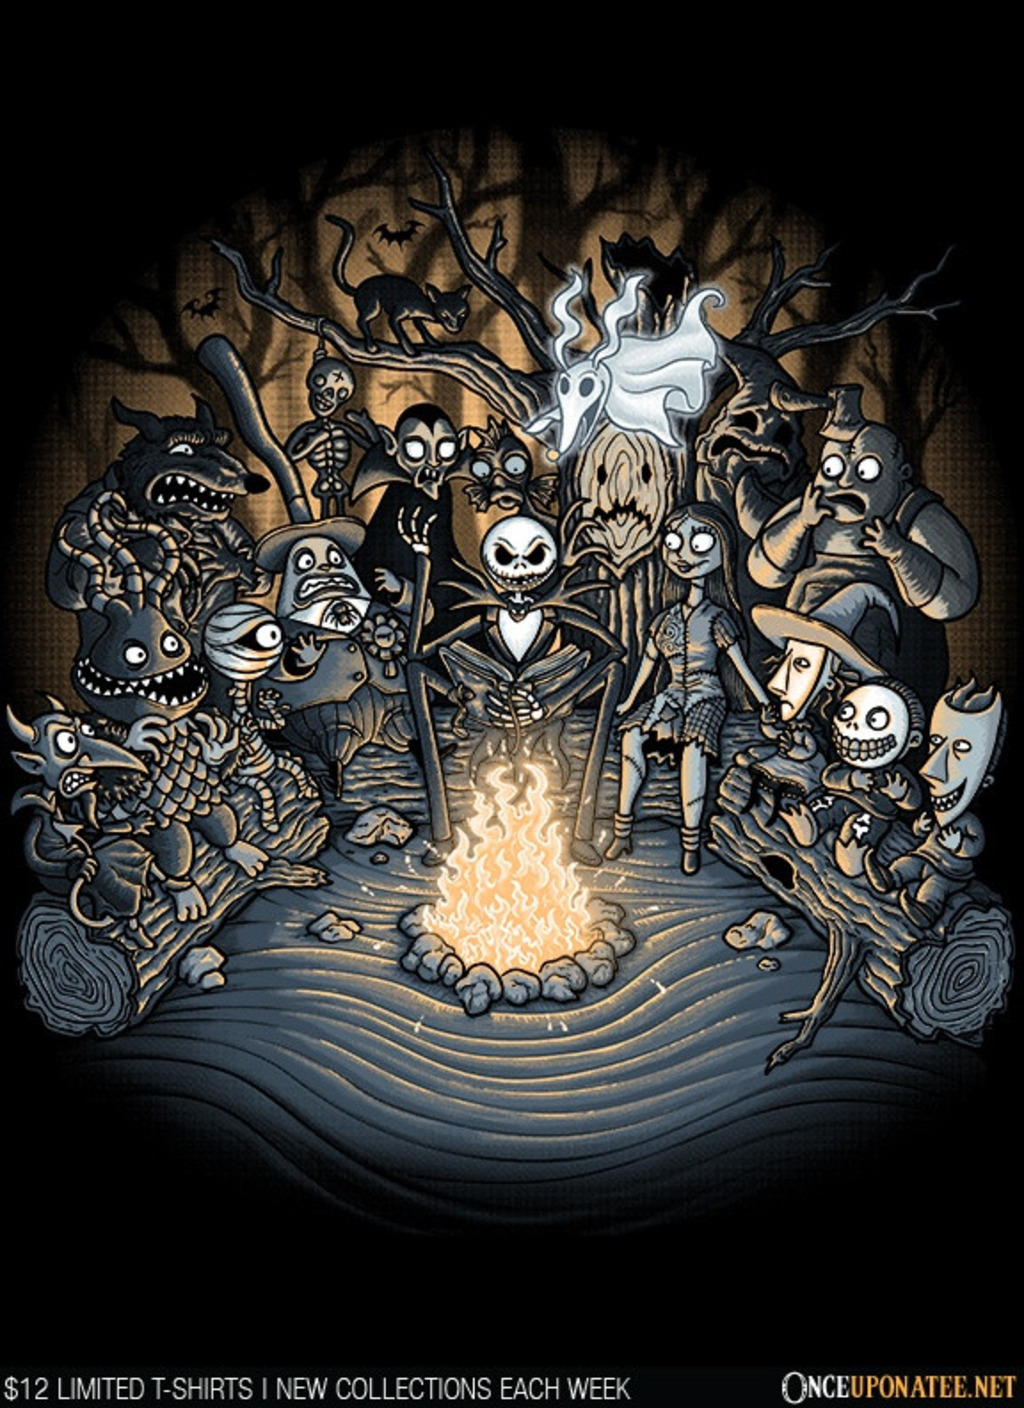 Once Upon a Tee: Halloween Tale